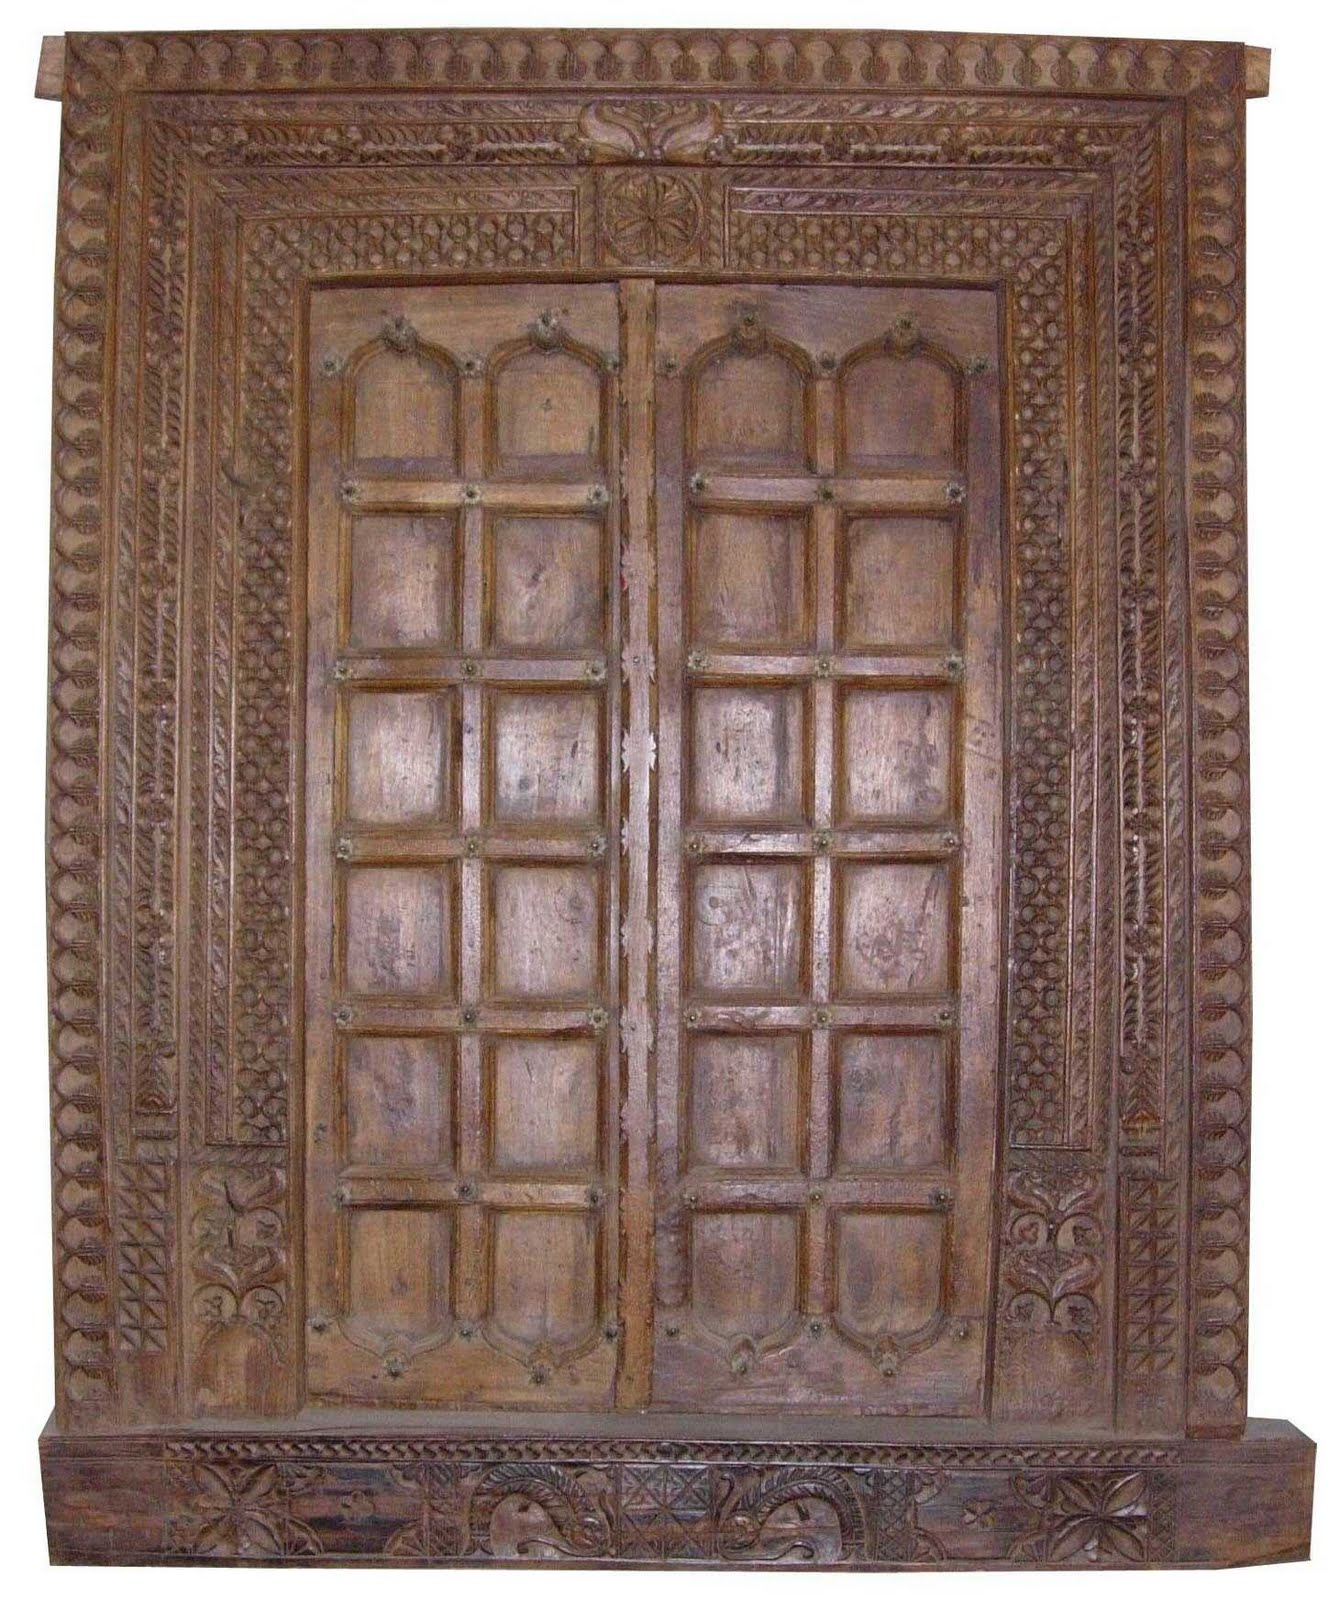 Antique Wooden Door 1328 x 1600